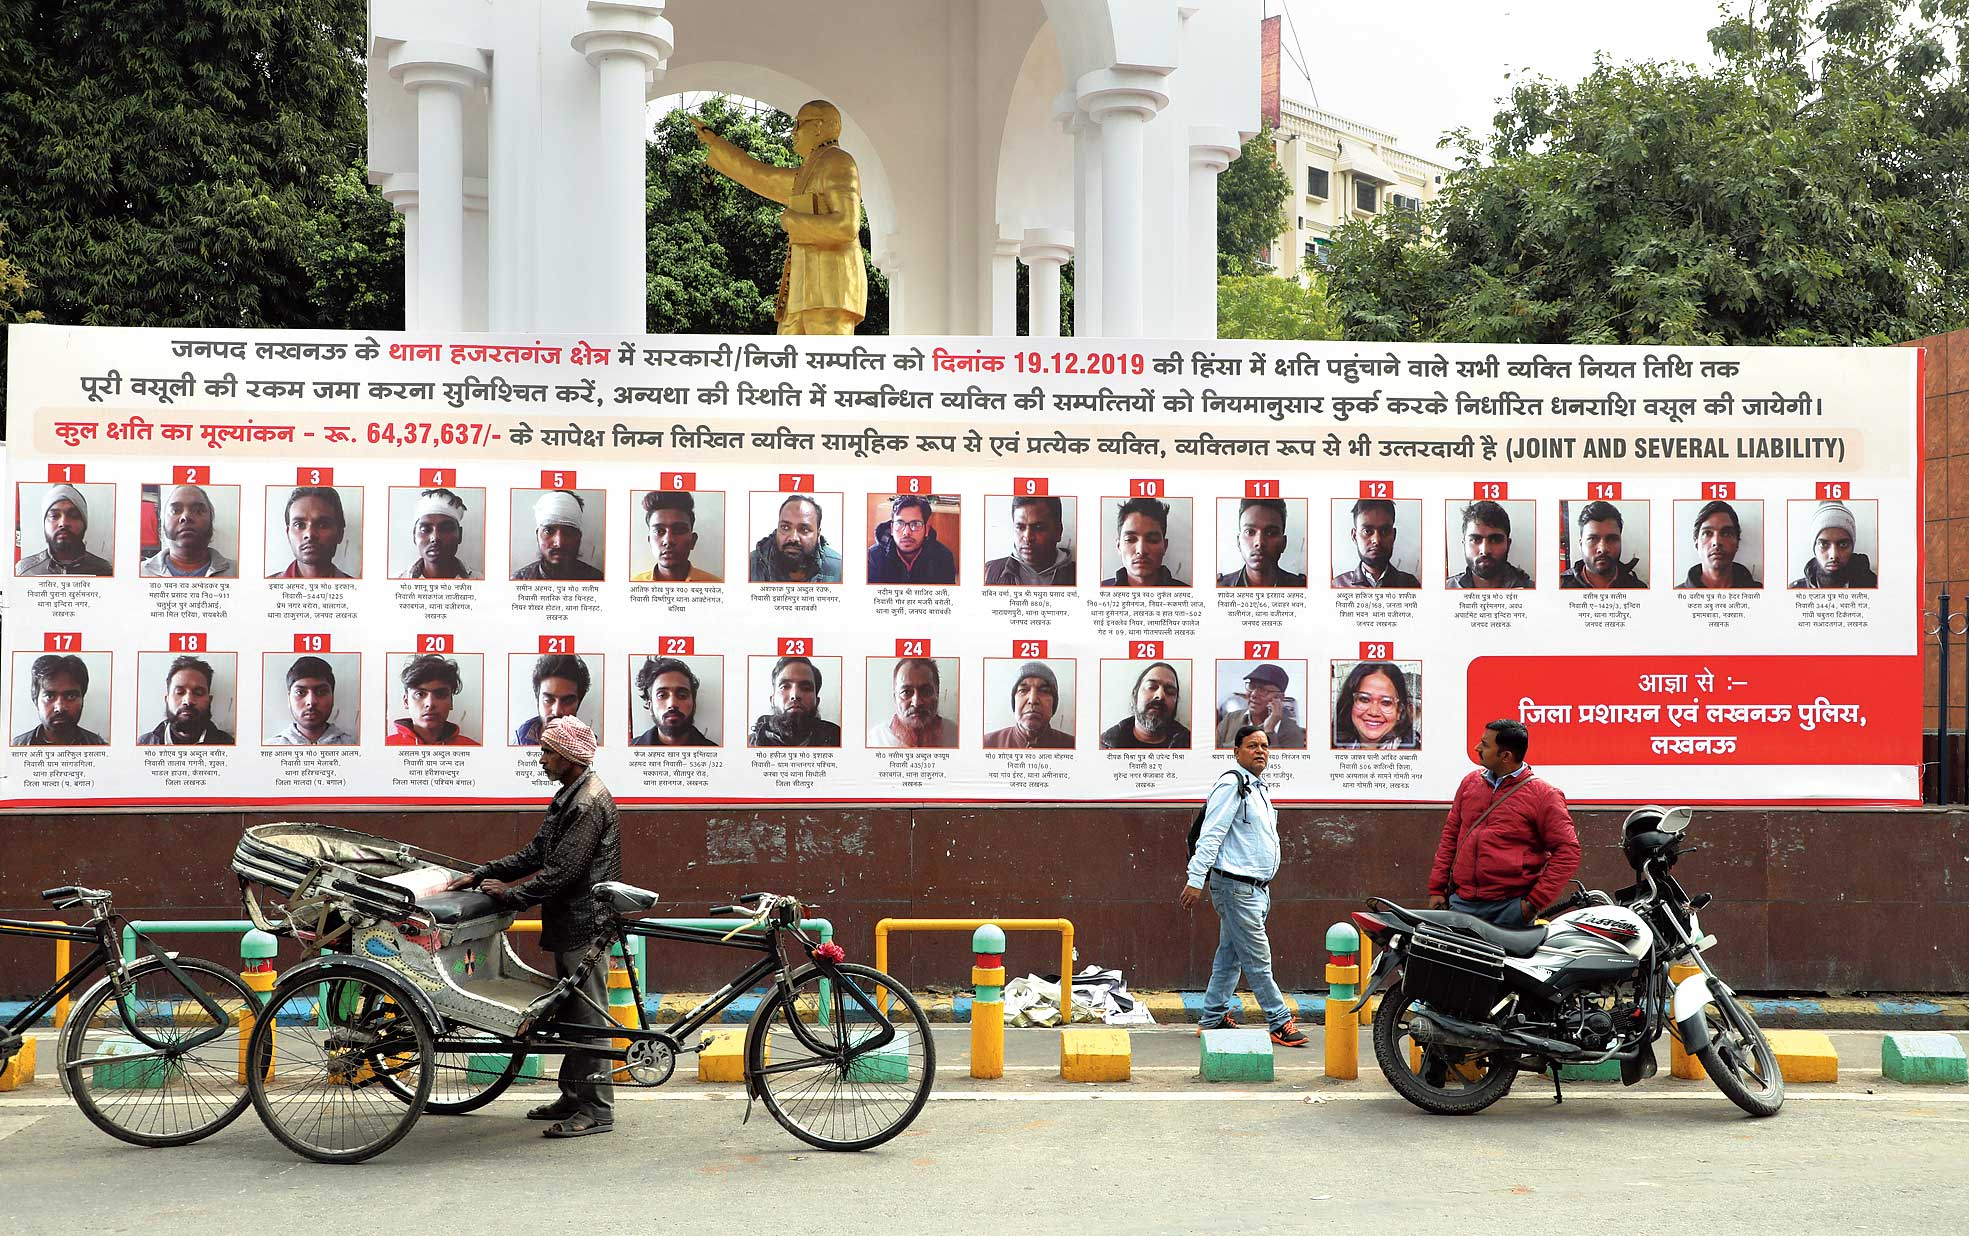 UP govt moves SC against Allahabad HC order to remove posters of anti-CAA protesters